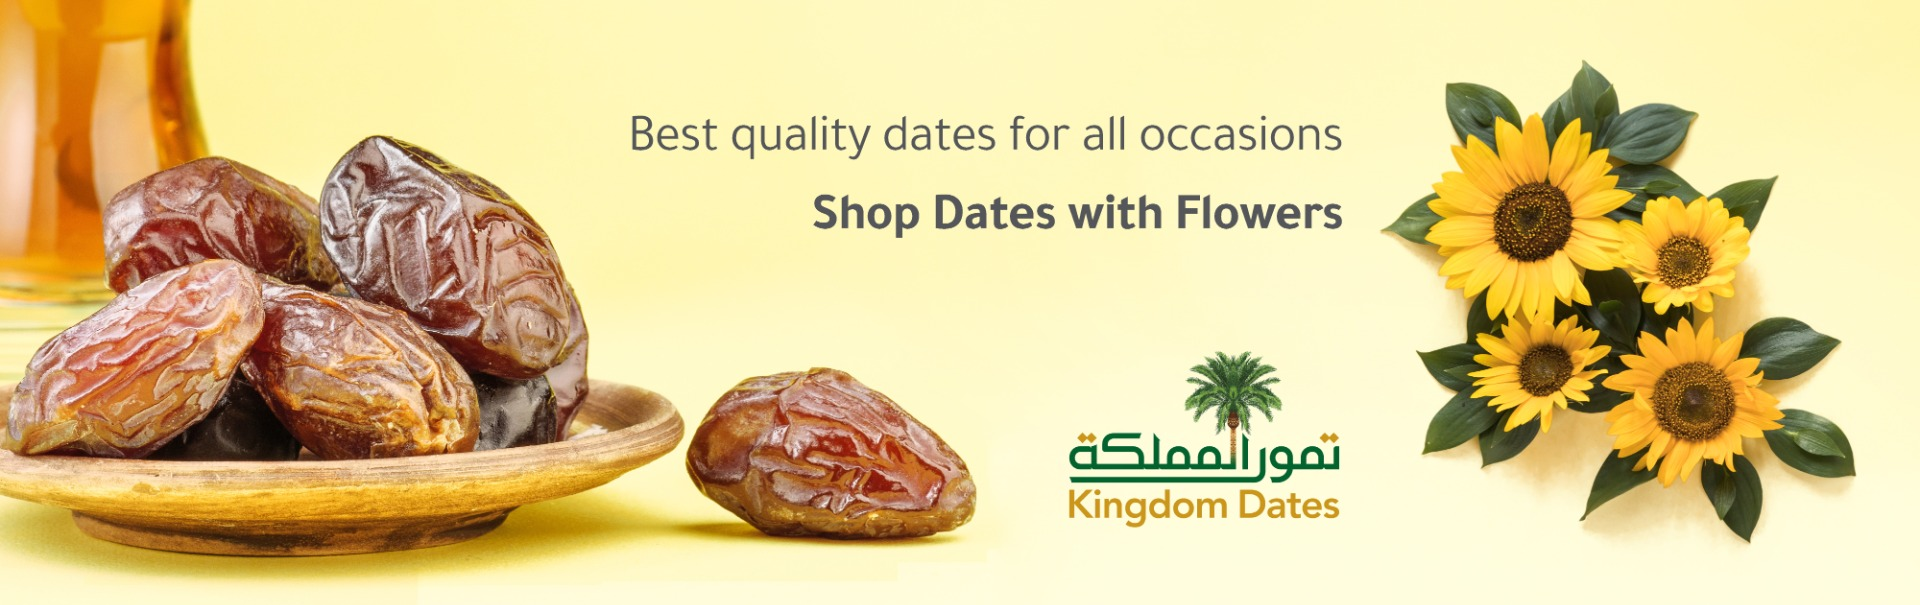 accessories/dates-for.html